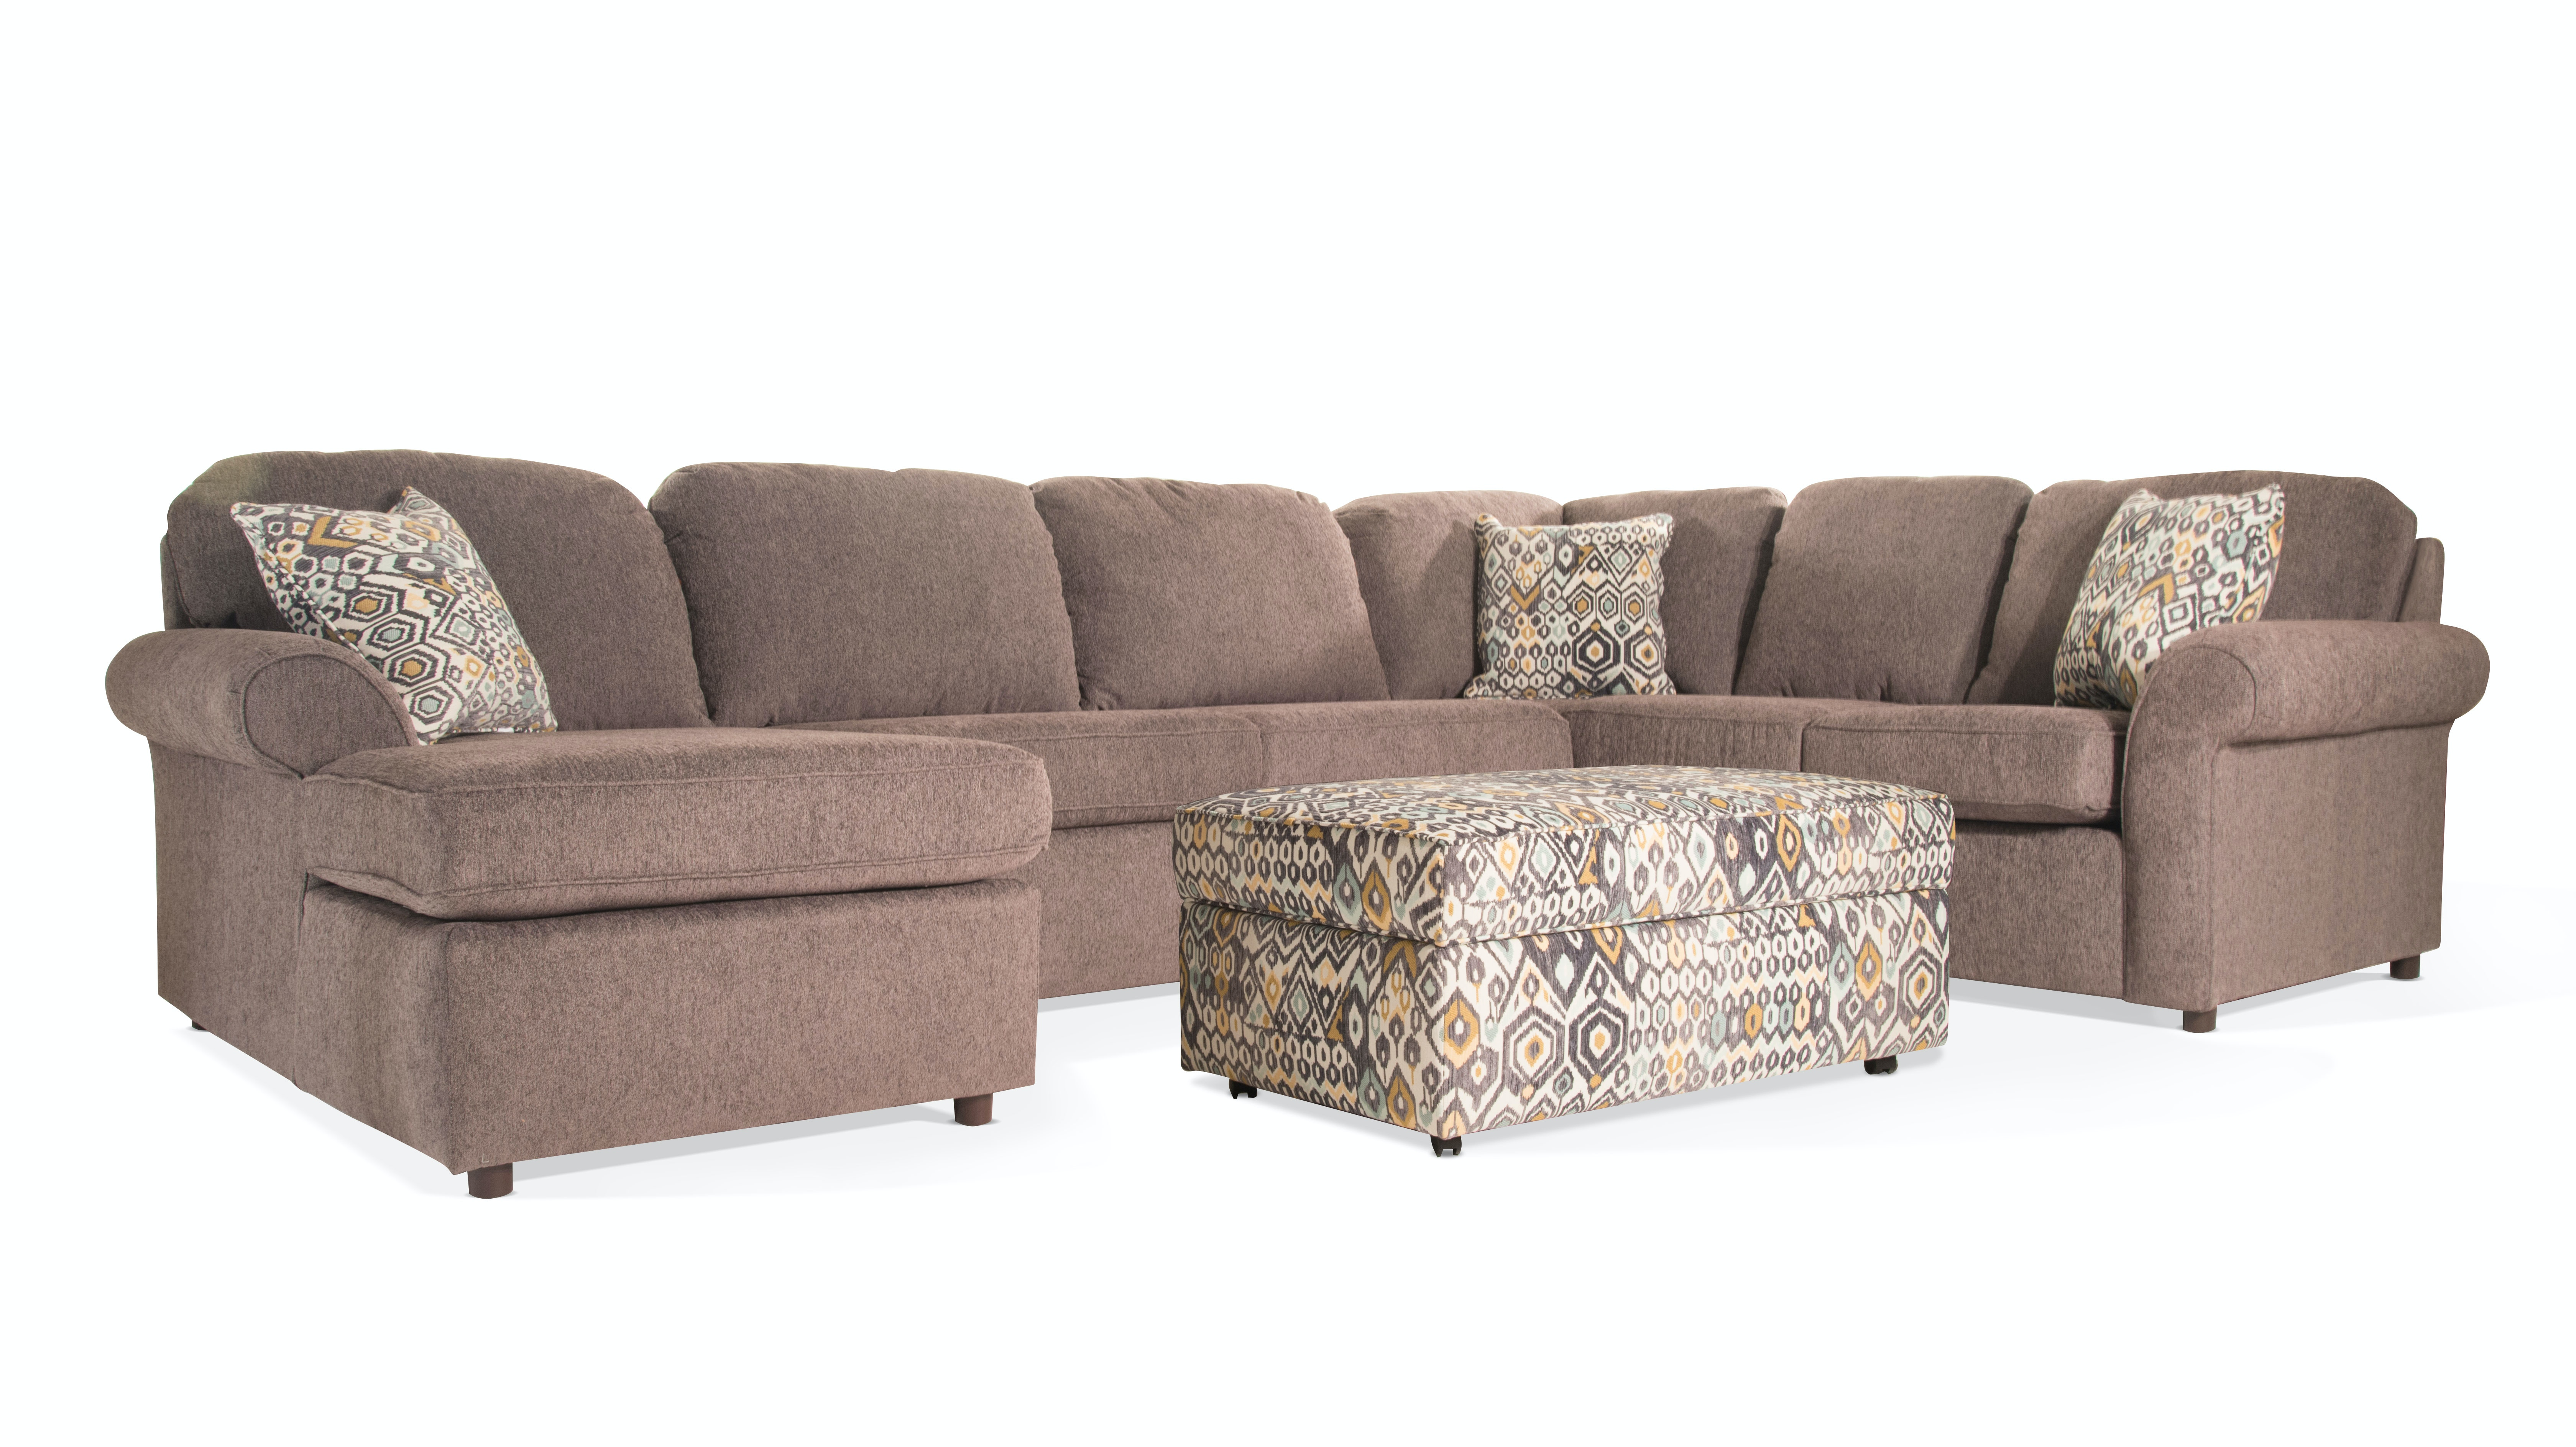 England Living Room Marcia Sectional with Ottoman 55MARCIA Bob